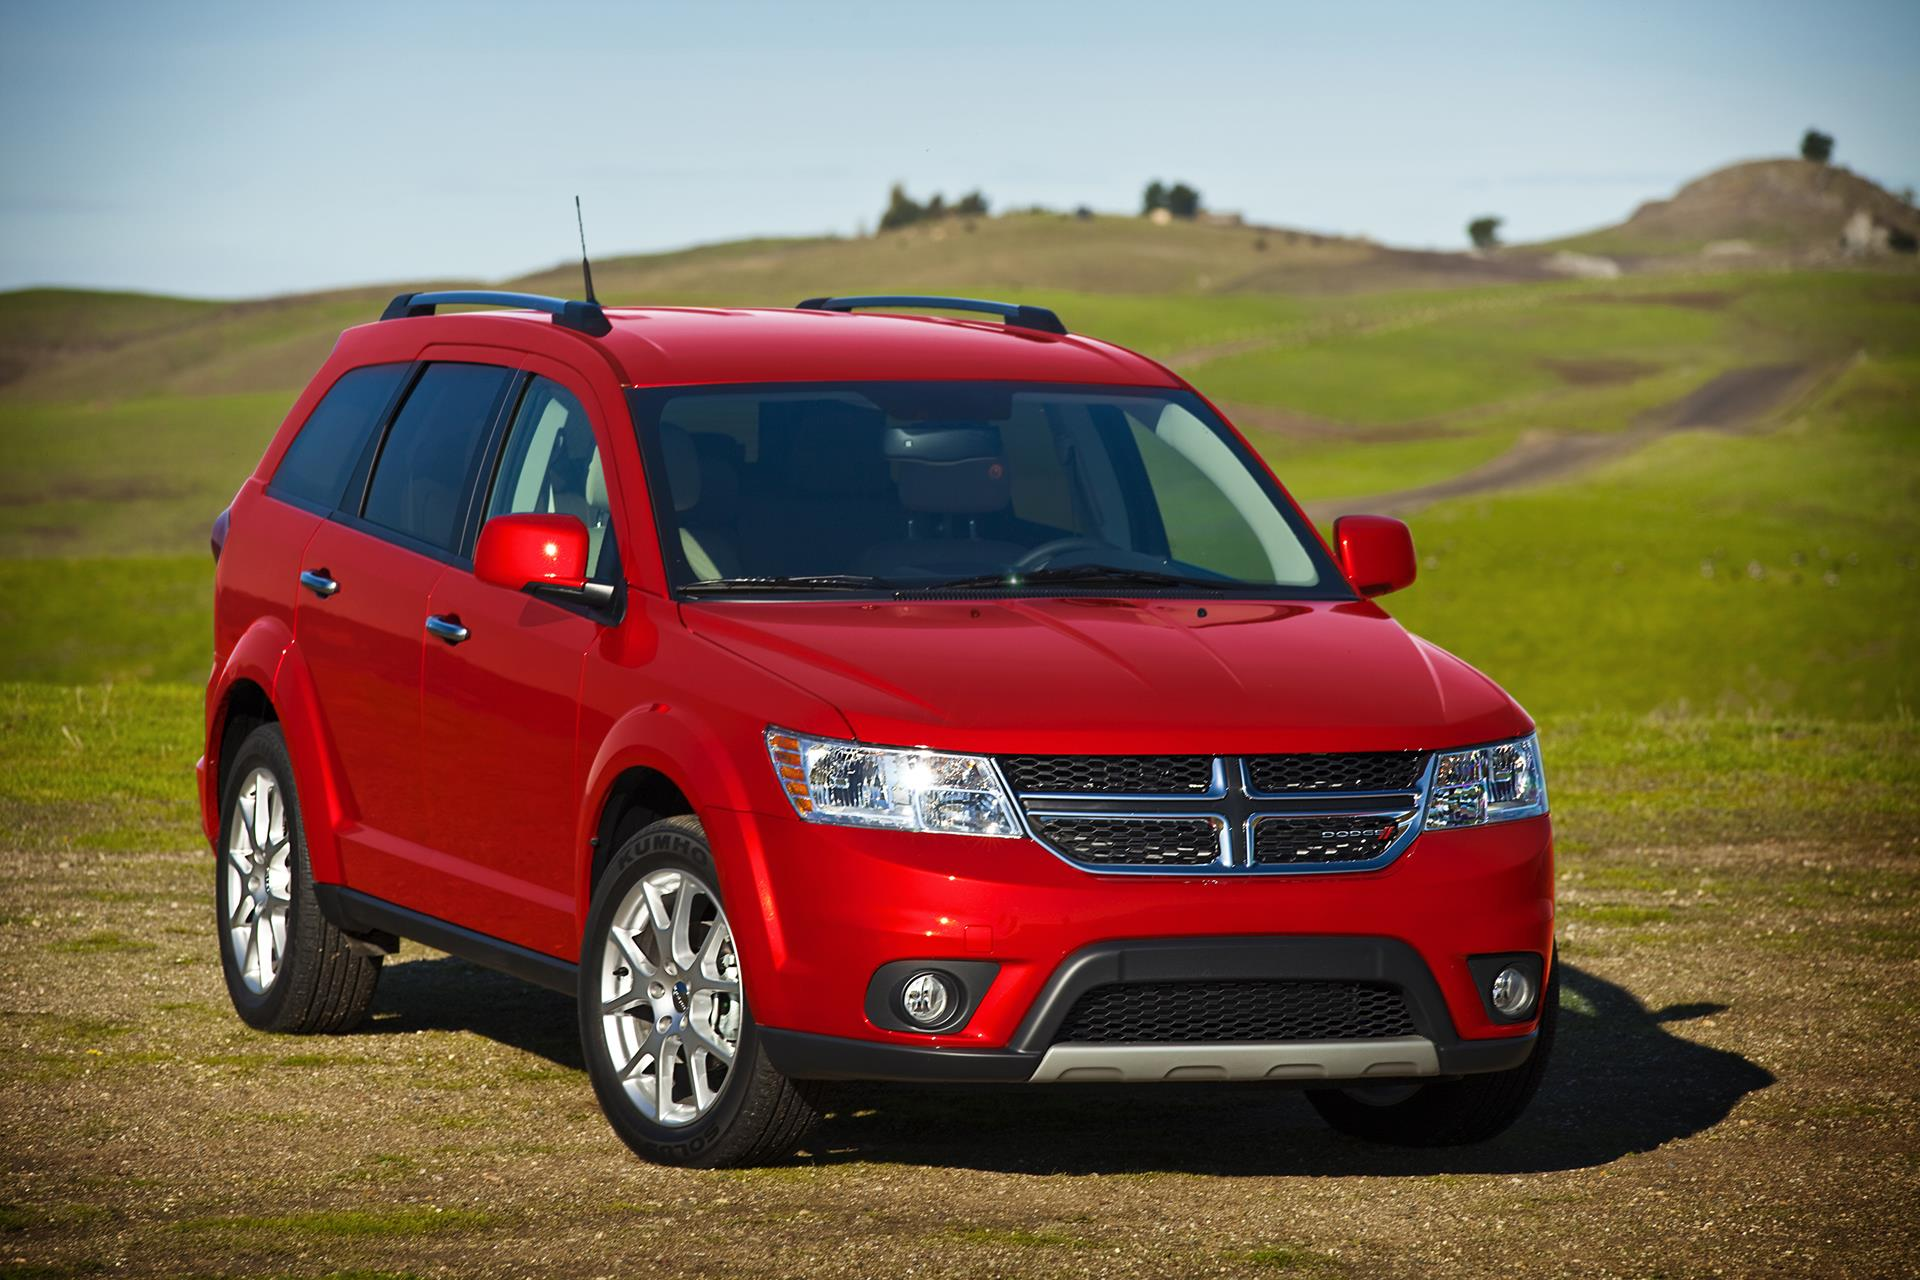 2015 dodge journey technical specifications and data engine dimensions and mechanical details. Black Bedroom Furniture Sets. Home Design Ideas